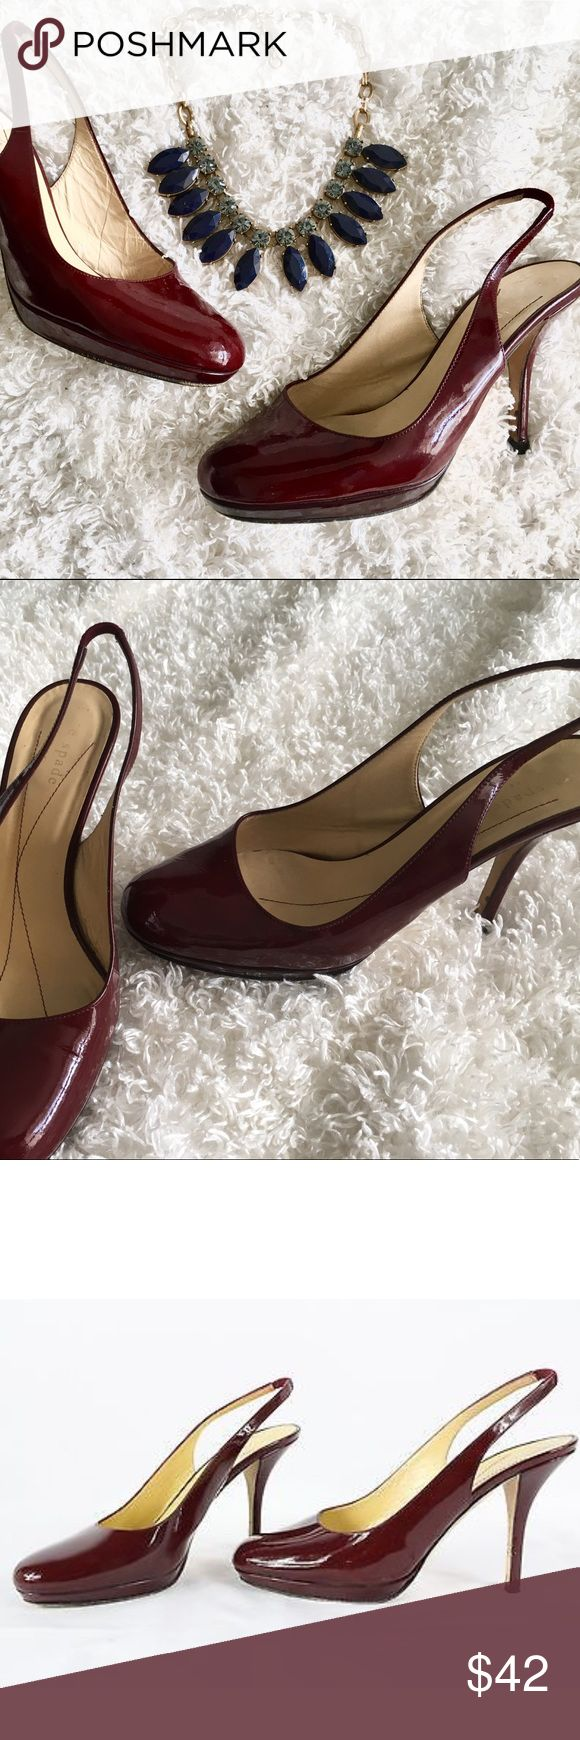 SUNDAY FLASH SALE ⚡️Kate Spade Ruby Sling Heels Kate Spade KENZIE Ruby Patent Slingback Heels Size 7 Item includes original shoes box.  Preloved see pictures  Smoke free home kate spade Shoes Heels